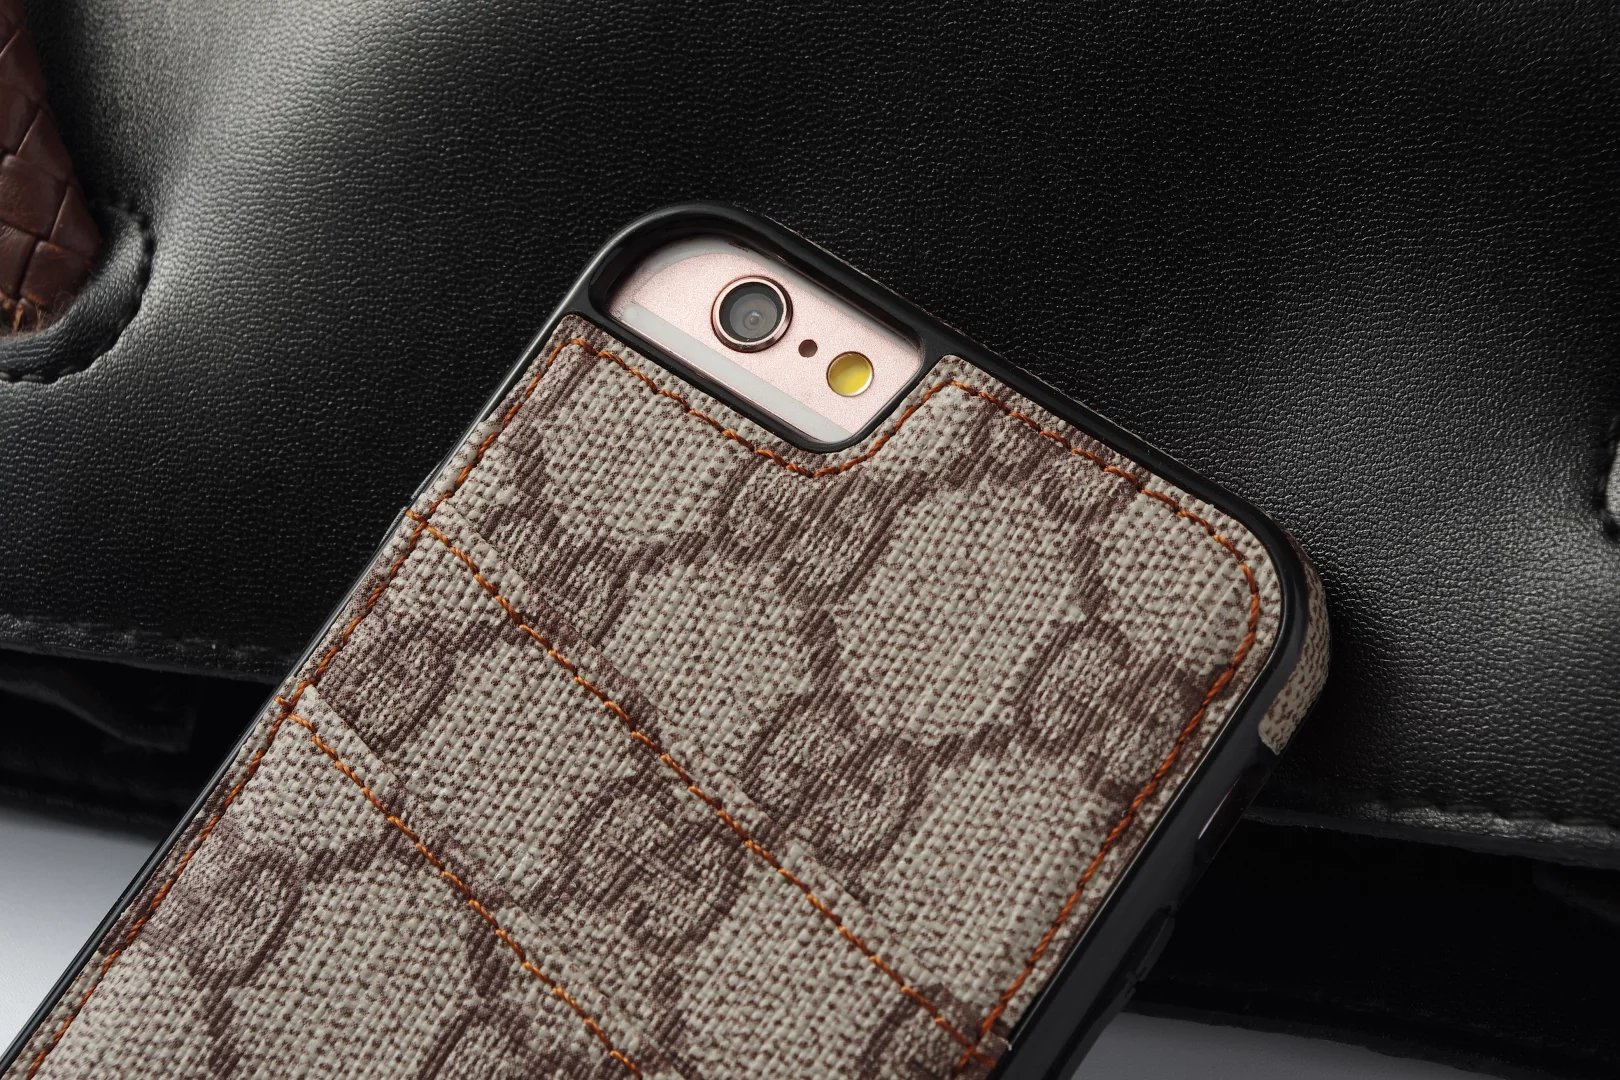 schöne iphone hüllen handy hülle iphone Louis Vuitton iphone 8 hüllen iphone ca8 gestalten handy ca8 shop iphone 8 hülle 8 iphone hülle smartphone schutzhülle iphone 8 hutzhülle test